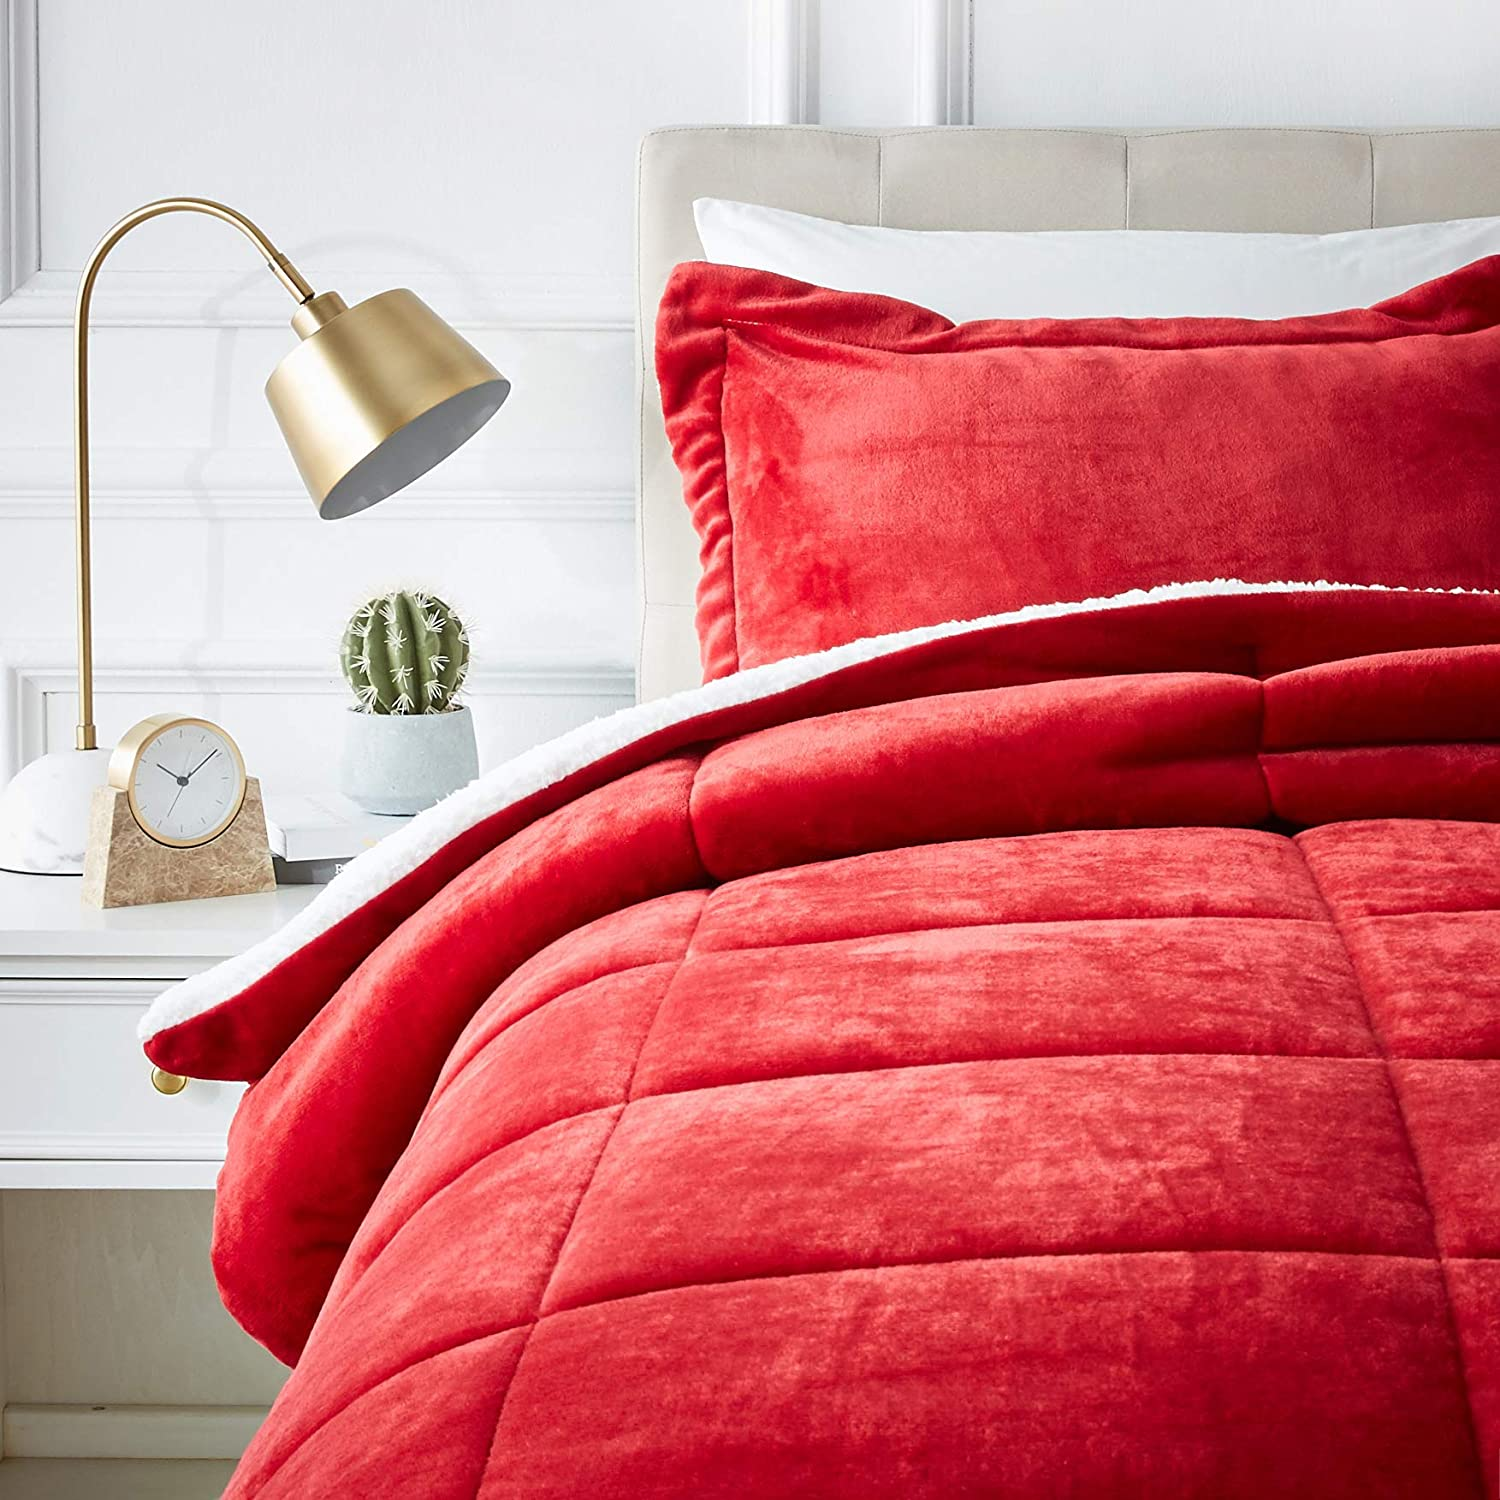 AmazonBasics Micromink Sherpa Comforter Set - Ultra-Soft, Fray-Resistant -Twin, Red